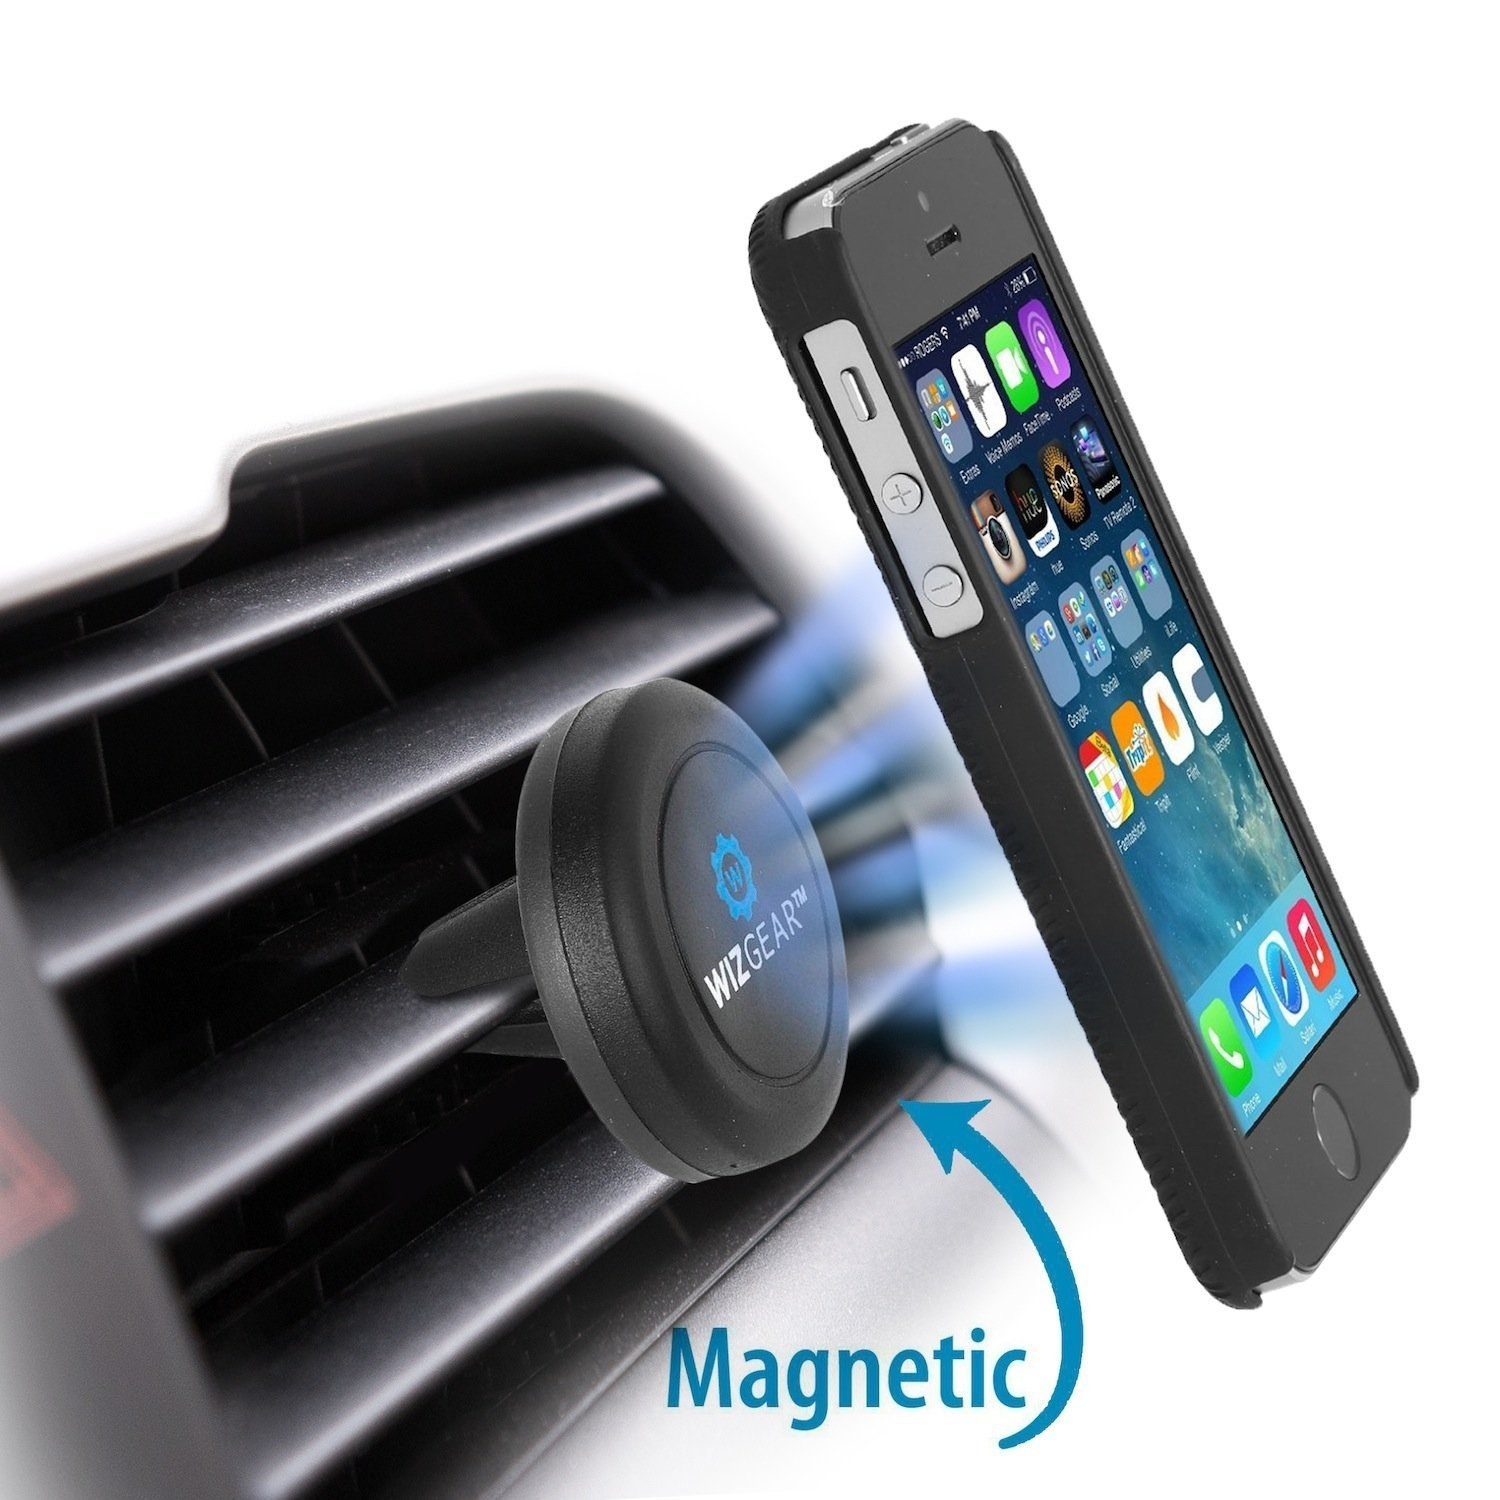 Magnetic phone bad car mount safe